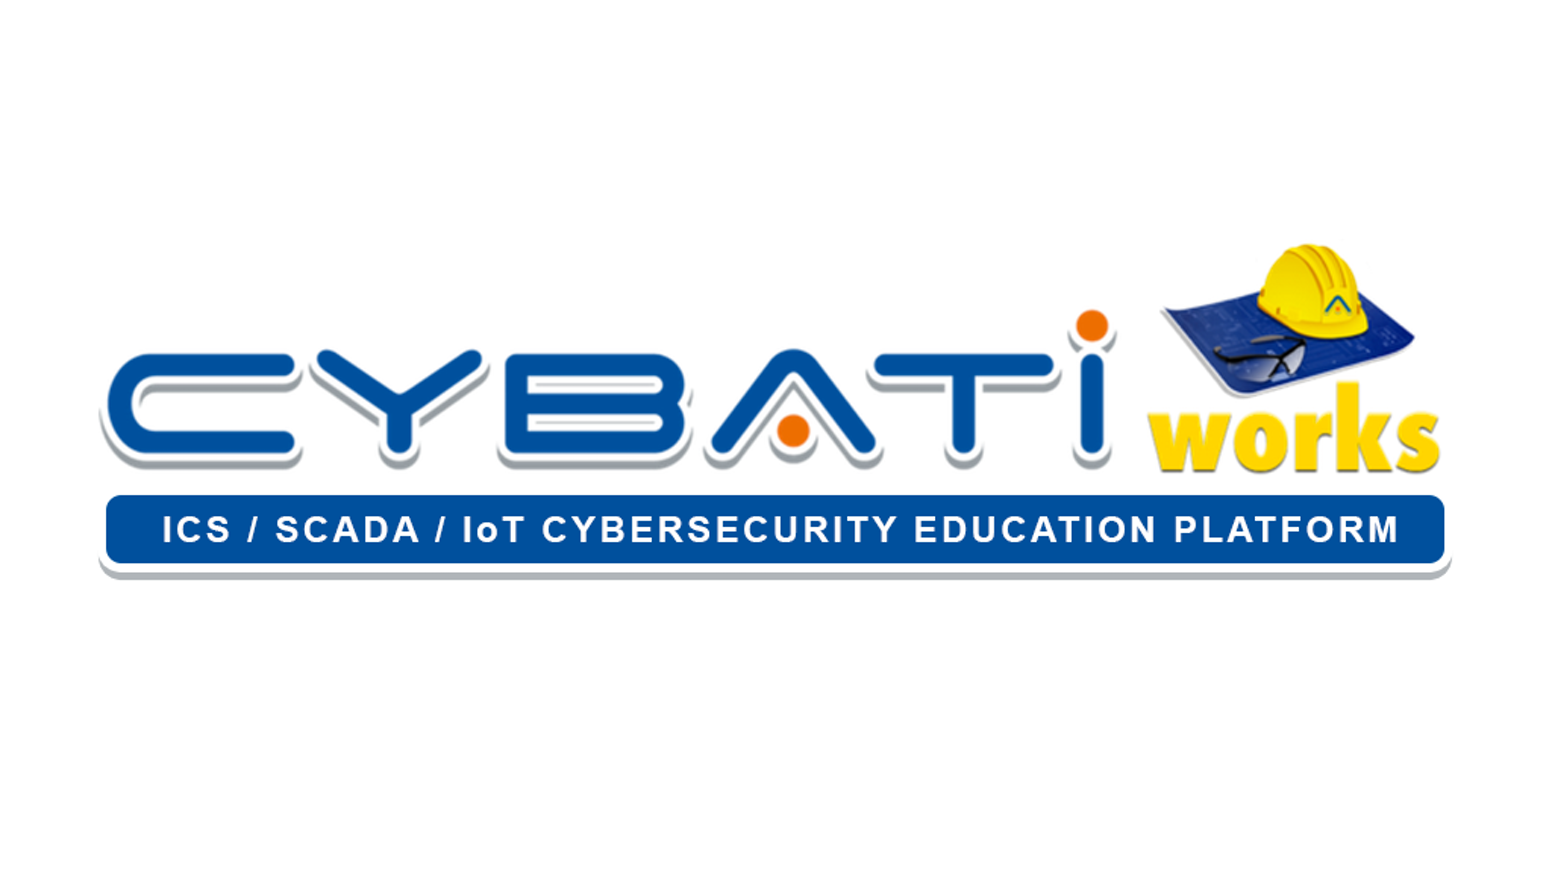 Providing a control system and cybersecurity hands-on educational platform for professionals, home-use, and academic institutions.